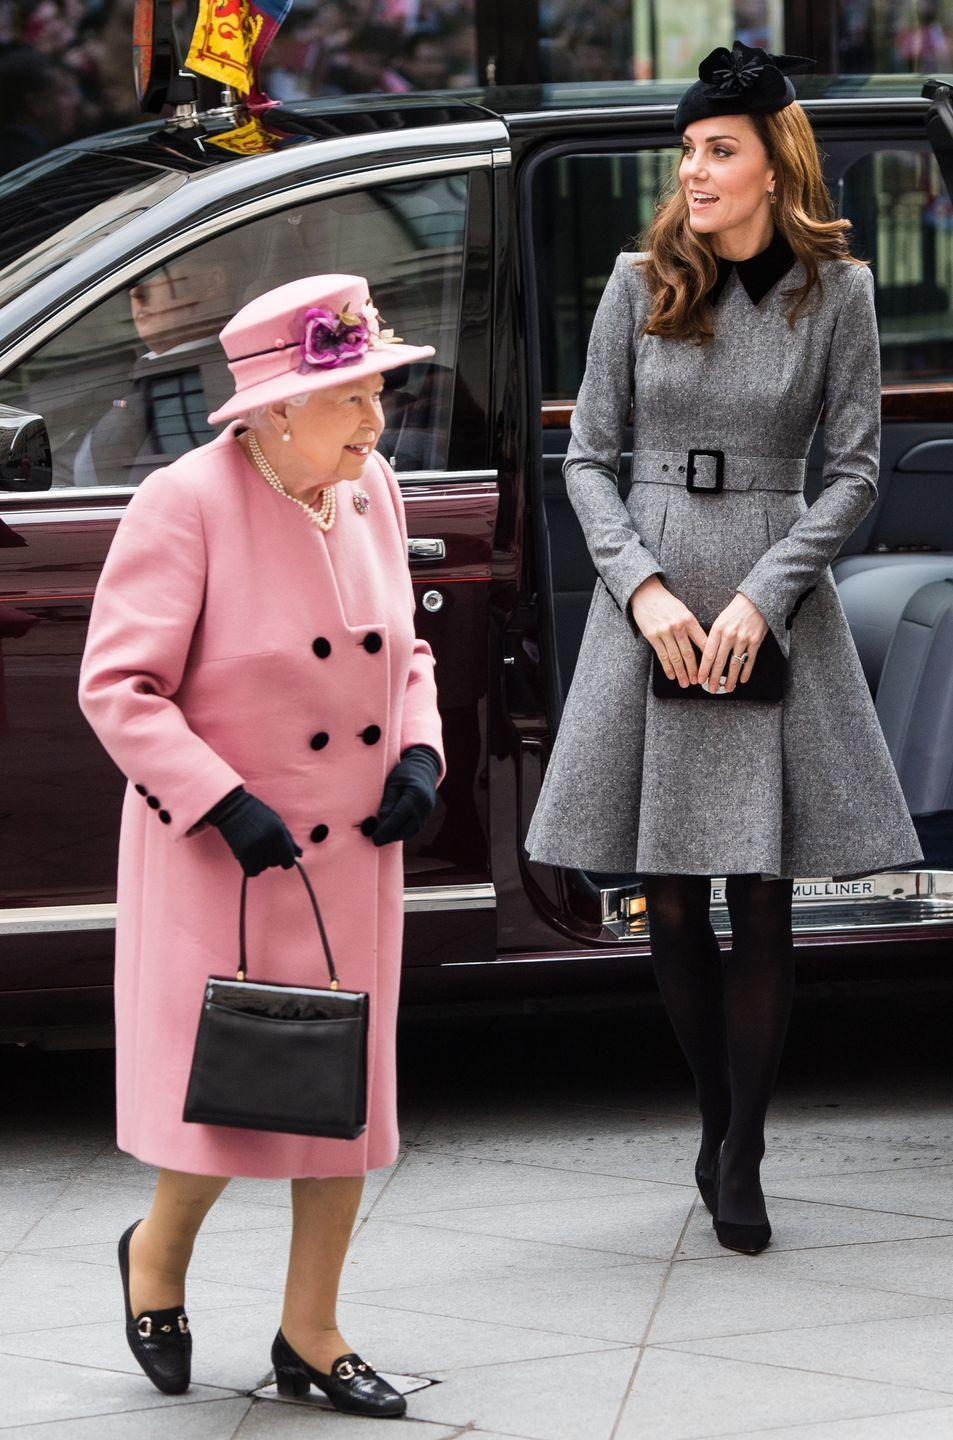 <p>The Queen may have enacted this rule more due to her preference for sitting behind the driver's seat than actual royal protocol, but nonetheless, she is the Queen. </p>